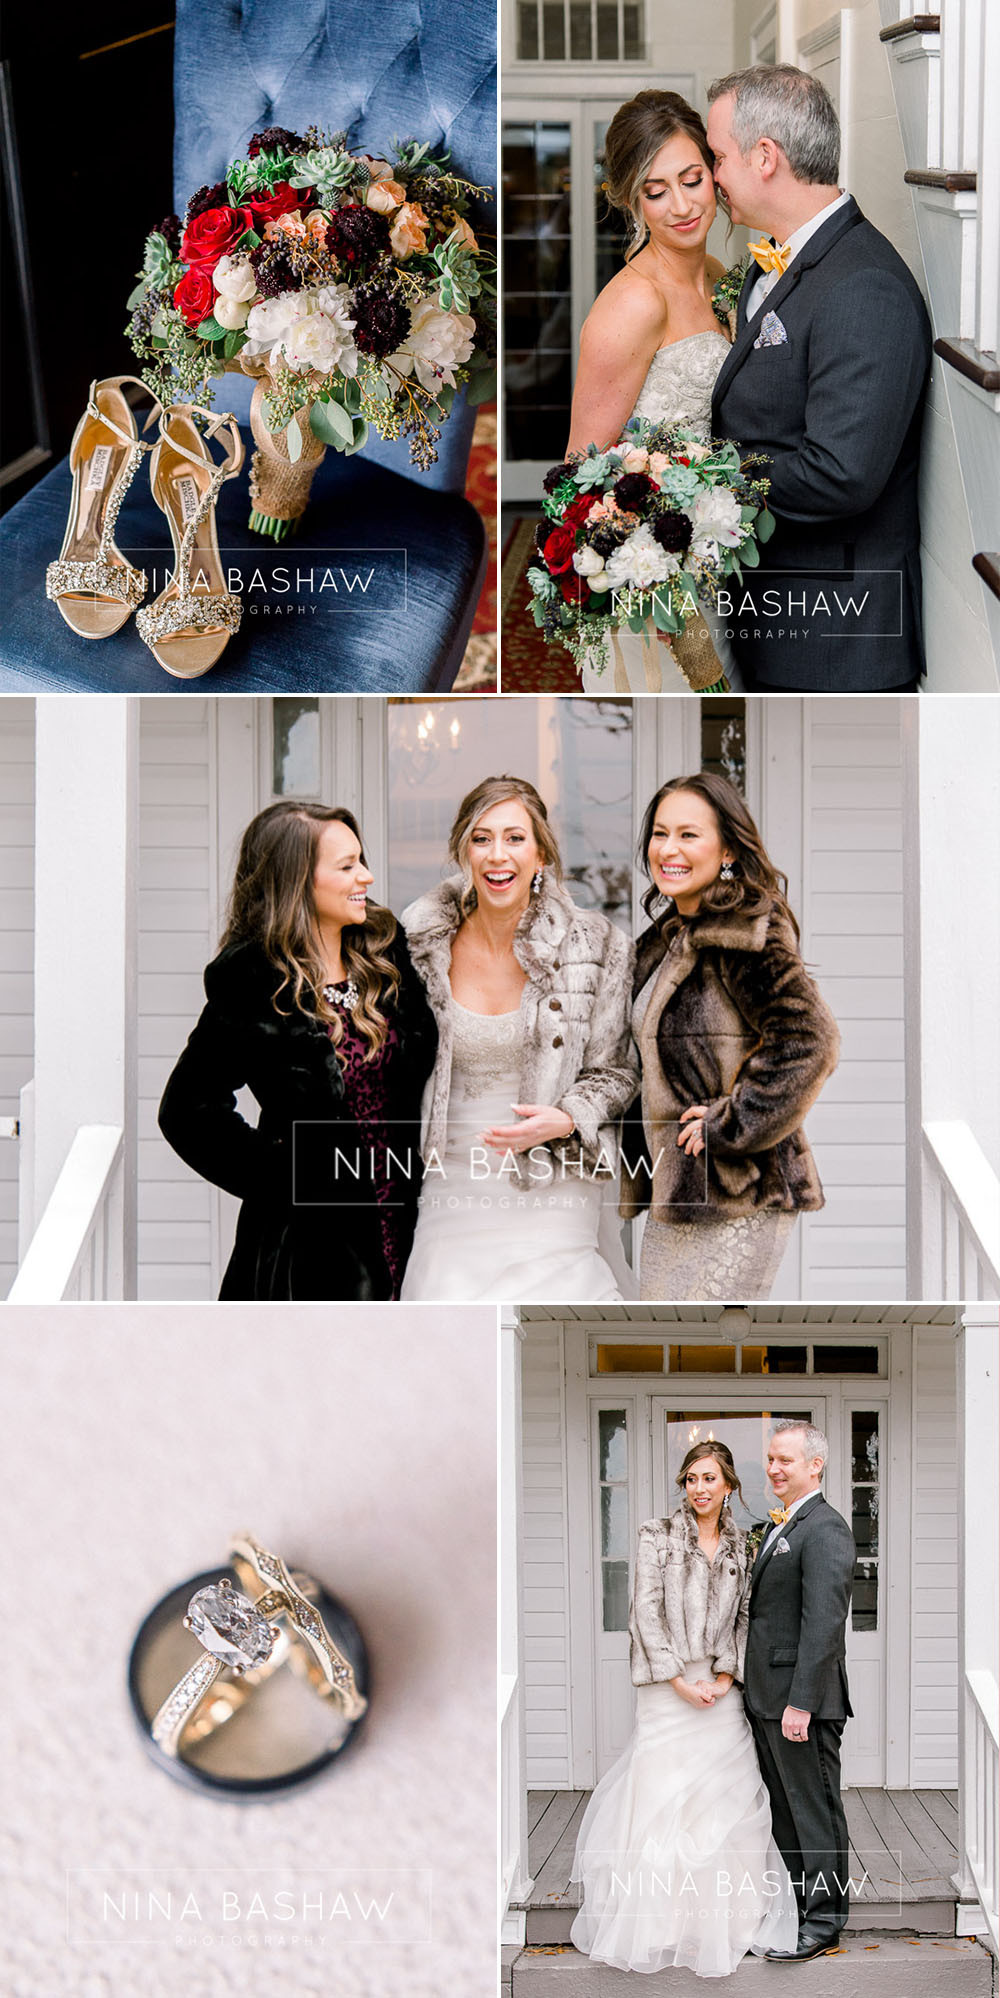 Charlotte wedding photographer Nina Bashaw | Wedding at Southern Oaks in Columbia, SC | Columbia wedding photographers